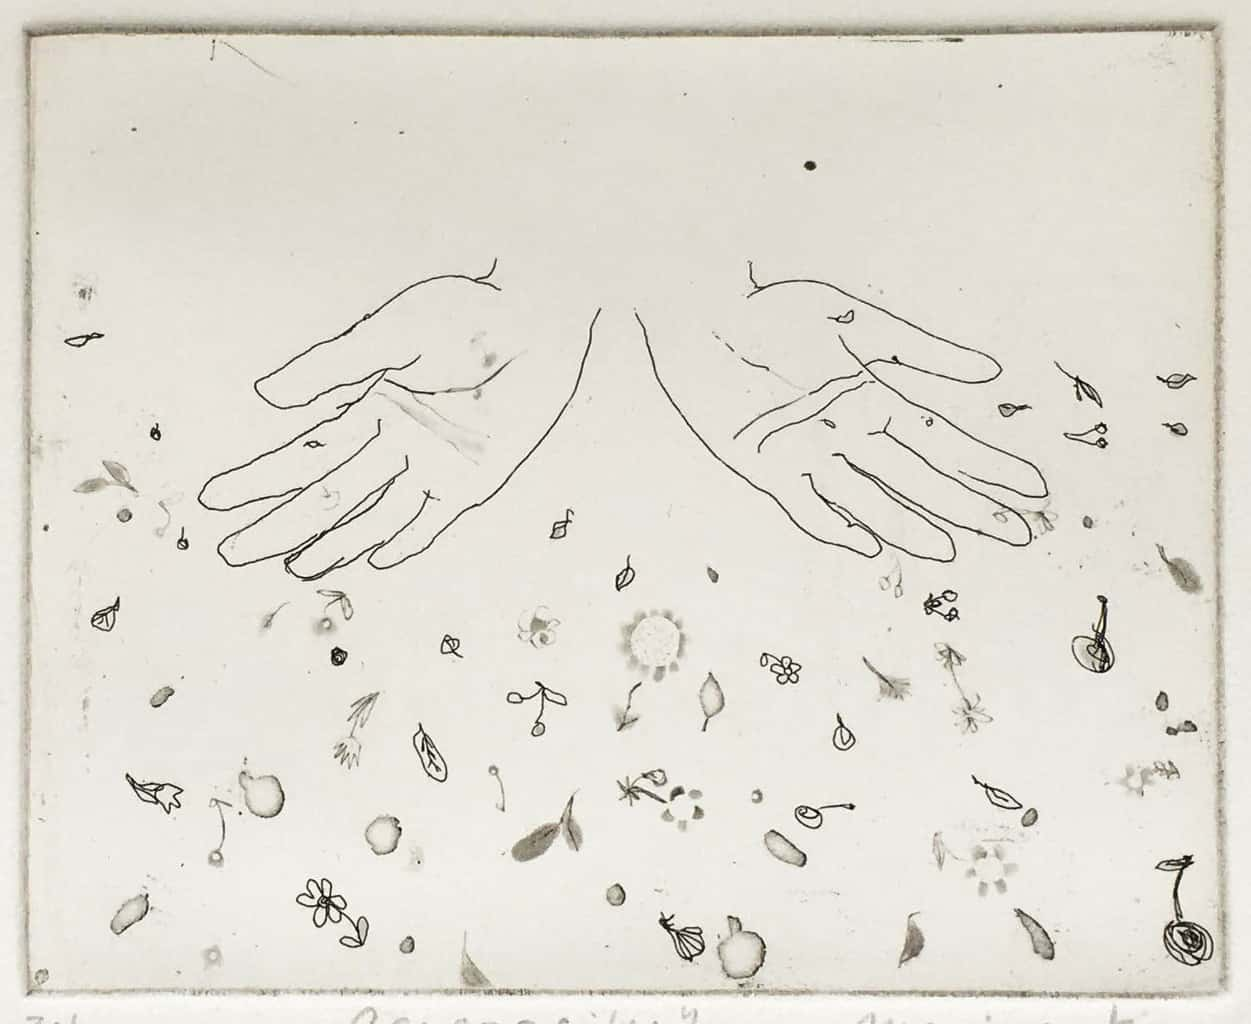 """""""Generosity"""" - image from the """"Hands"""" series featuring various stances of gesturing hands. Original print etching by painter-printmaker Marina Kim"""